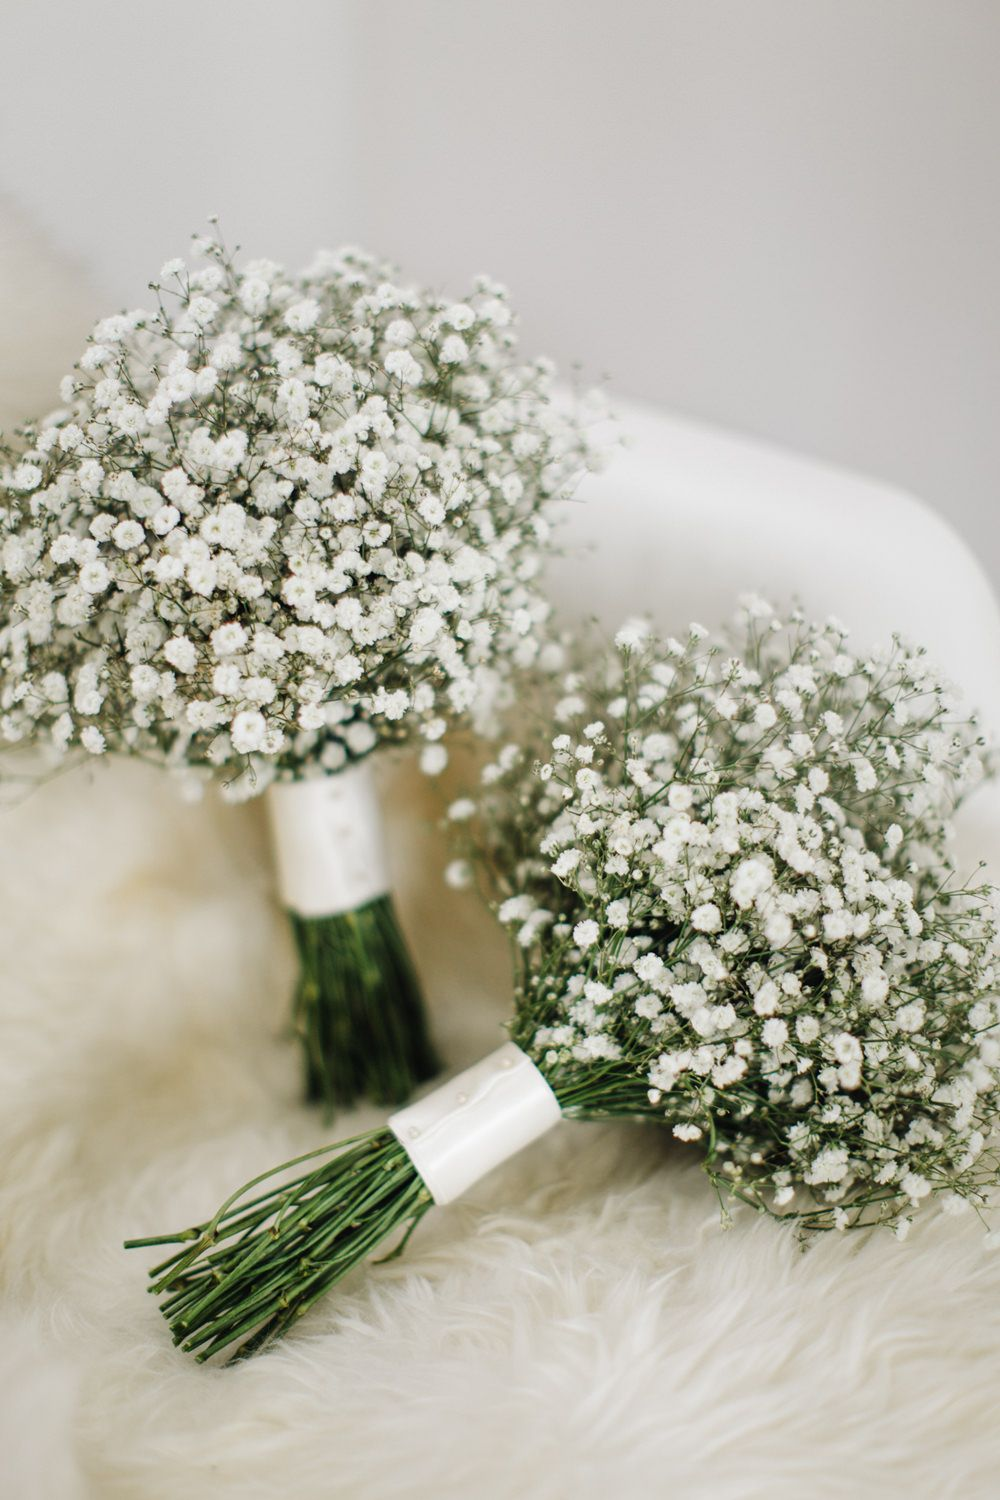 Gypsophila Bouquets - M&J Photography | Elegant London Wedding | White & Greenery Florals